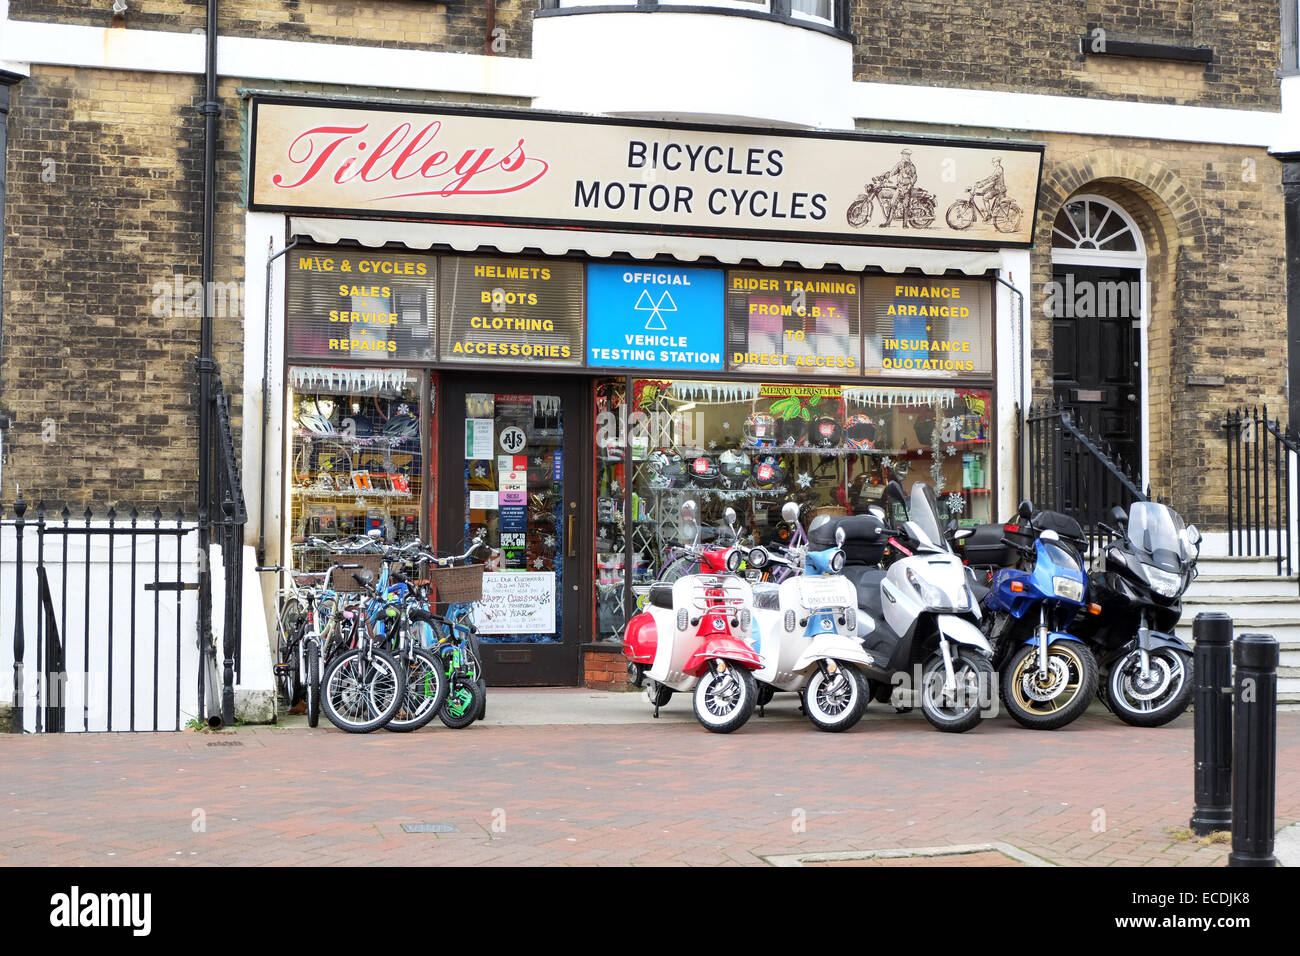 Tilley 39 S Bicycles And Motor Cycles Shop In Weymouth Town